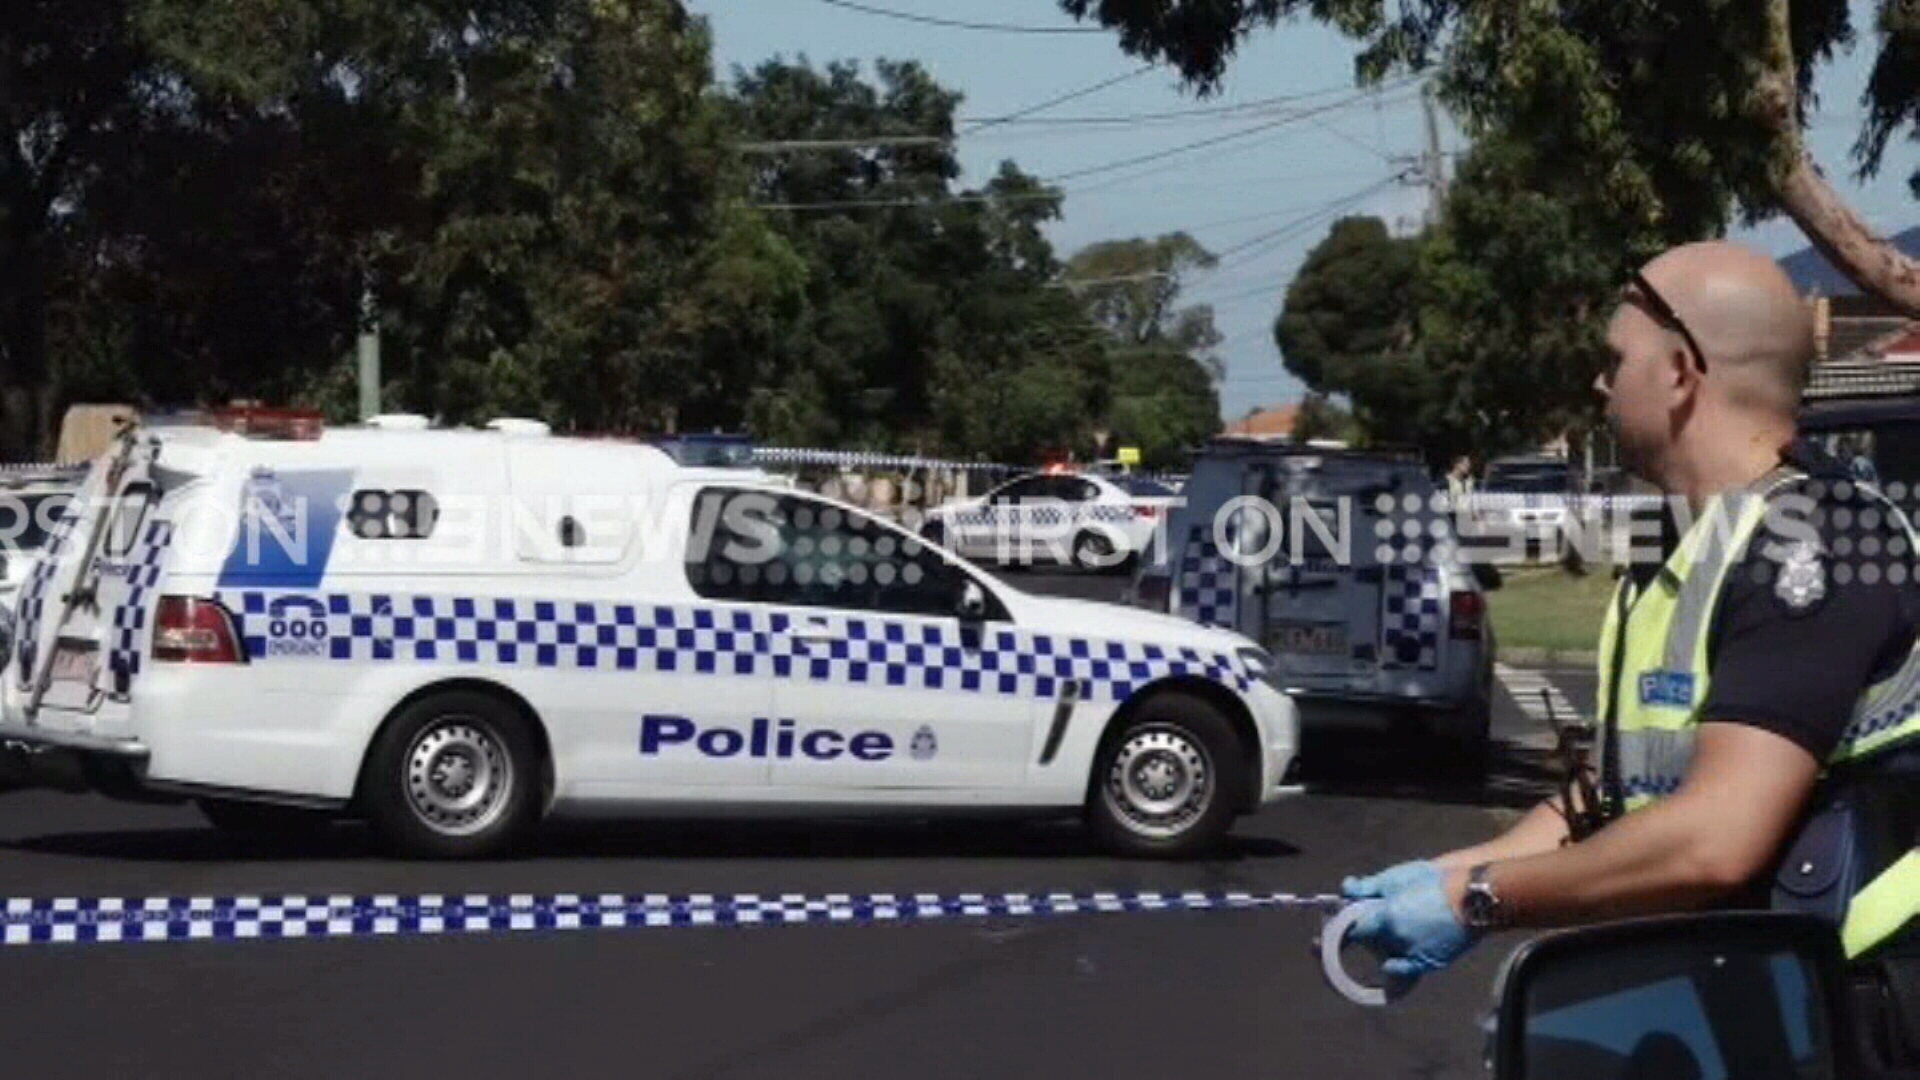 A neighbour reported hearing screams around the time of the incident. (9NEWS)